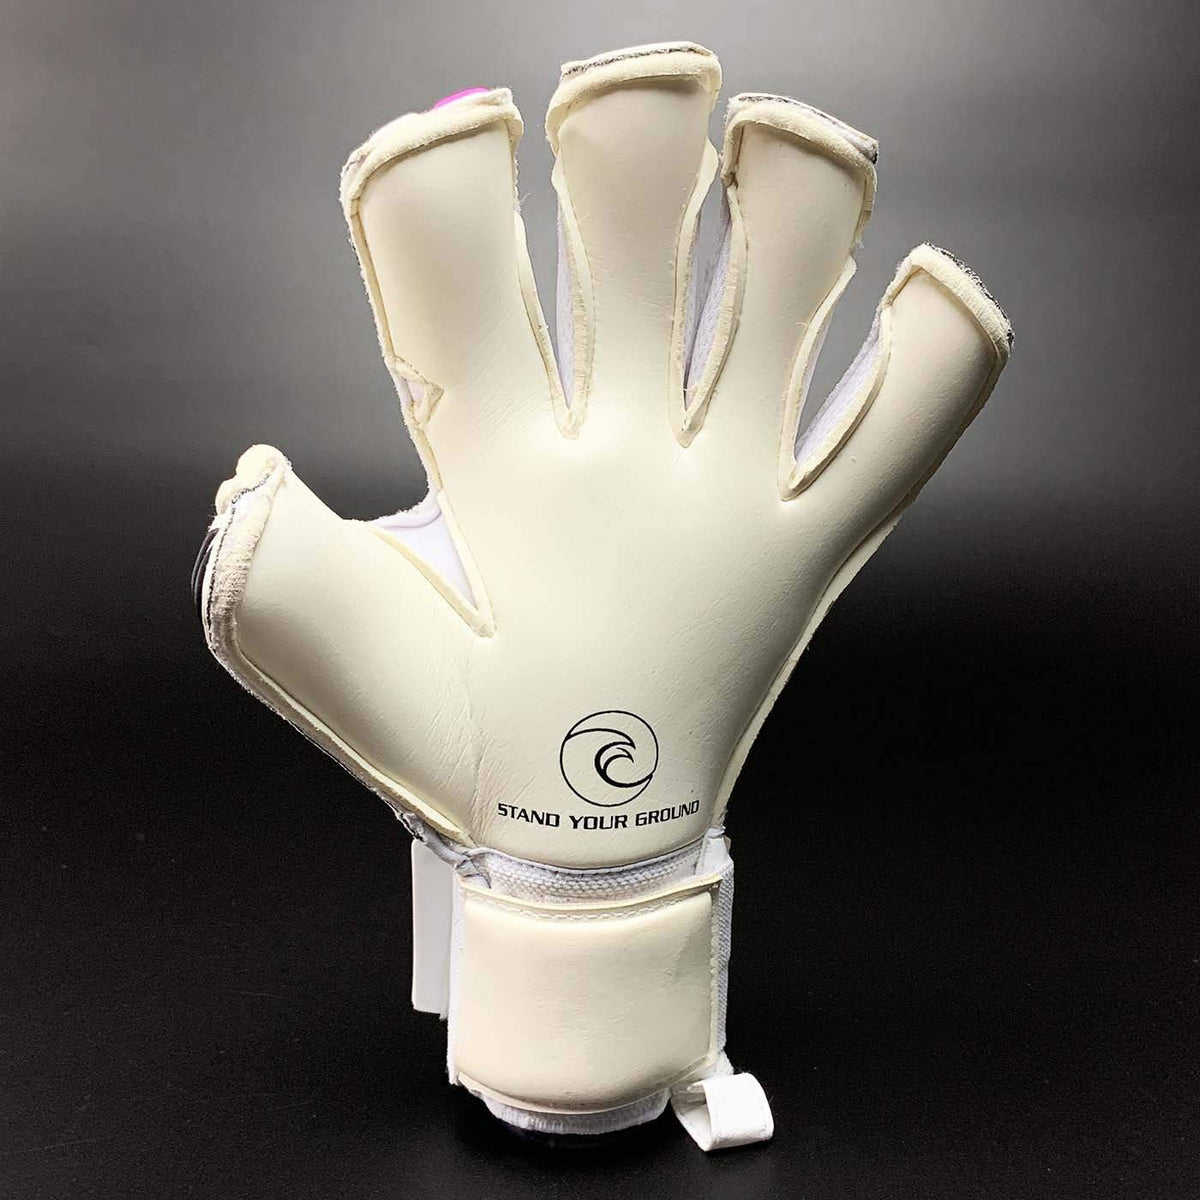 Helix Honor - West Coast Goalkeeping